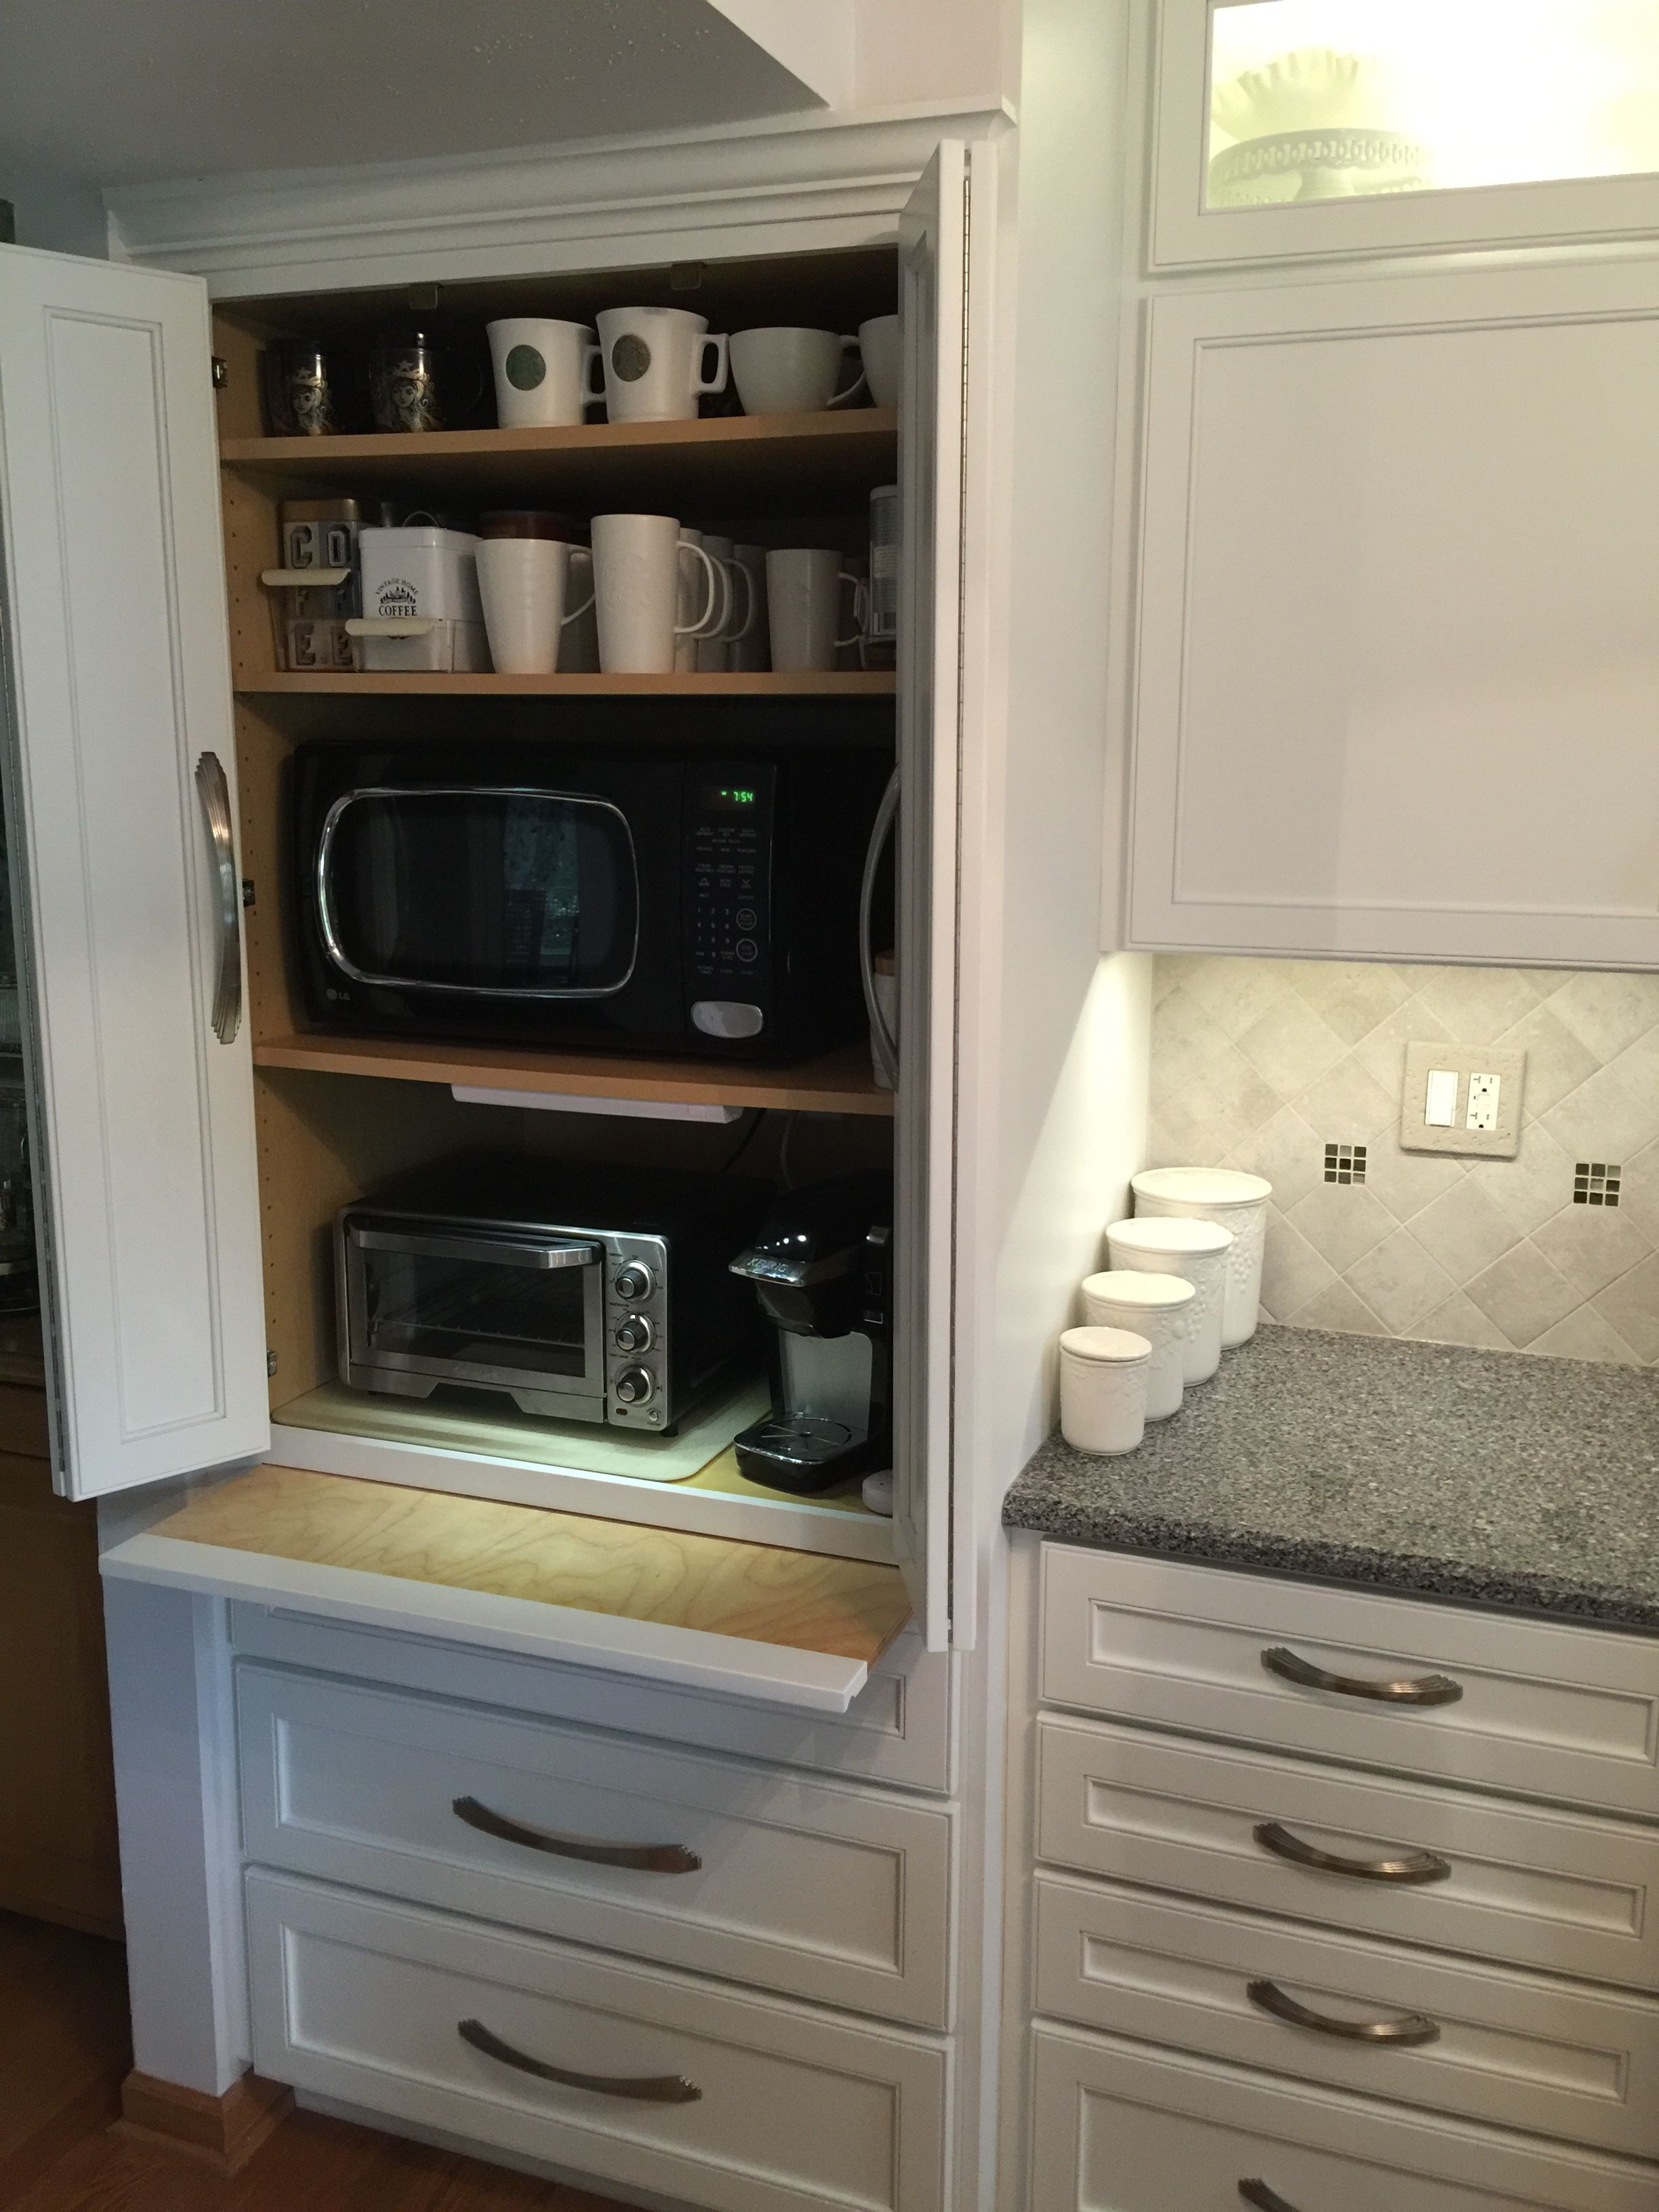 No Counter Clutter Appliance Cabinet Microwave Toaster Oven Coffee Maker Small Appliance Storag Appliances Storage Microwave Toaster Oven Kitchen Storage